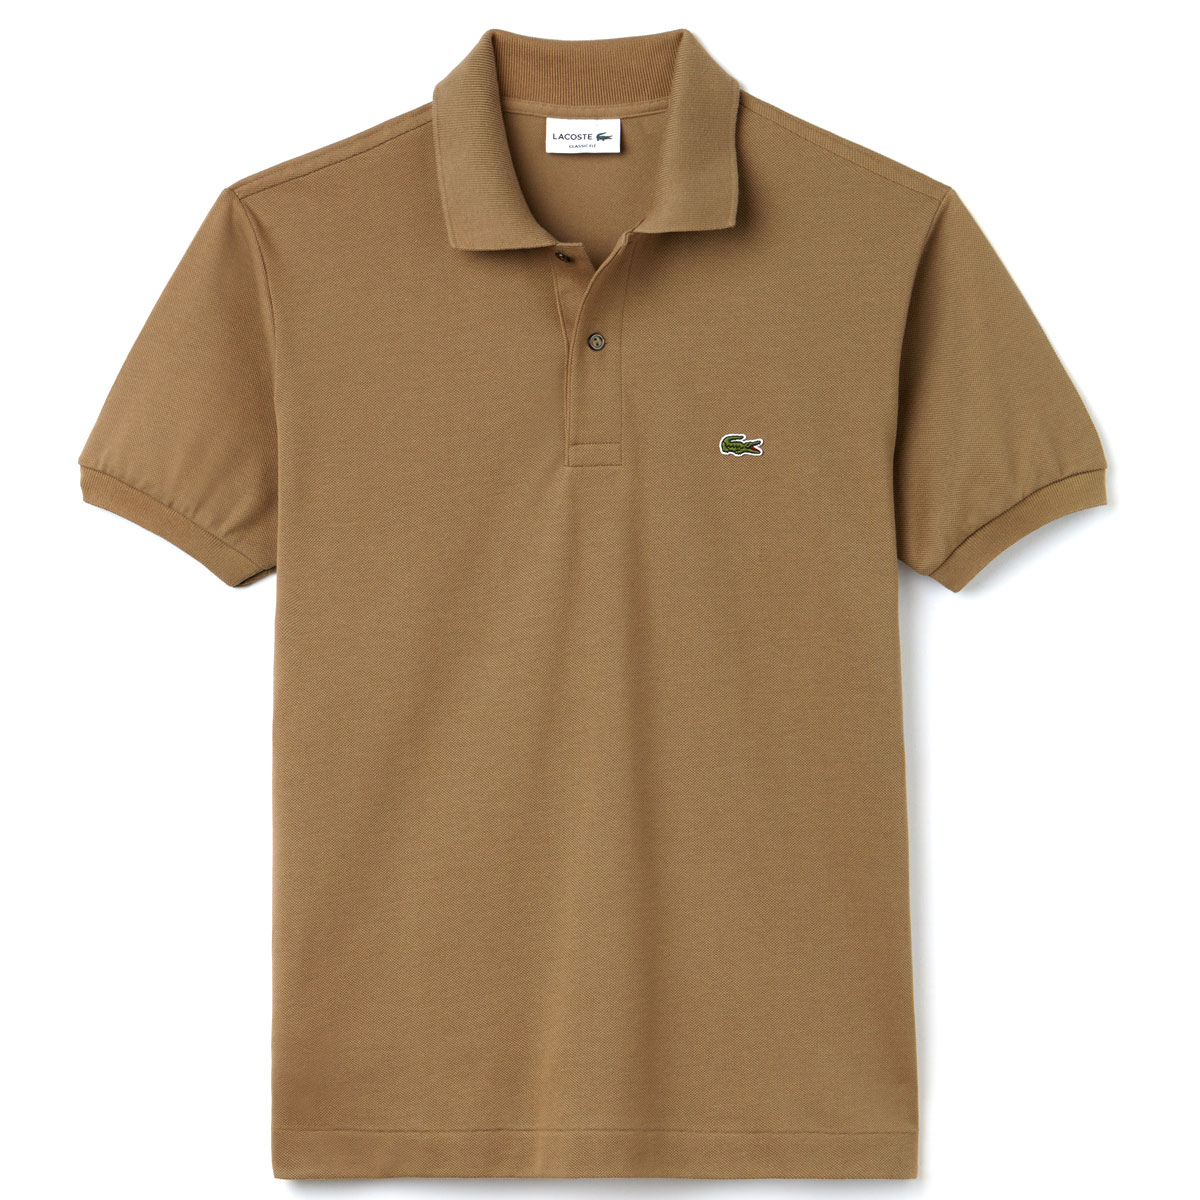 Lacoste-Mens-Classic-Cotton-L1212-Short-Sleeve-Polo-Shirt-26-OFF-RRP thumbnail 21